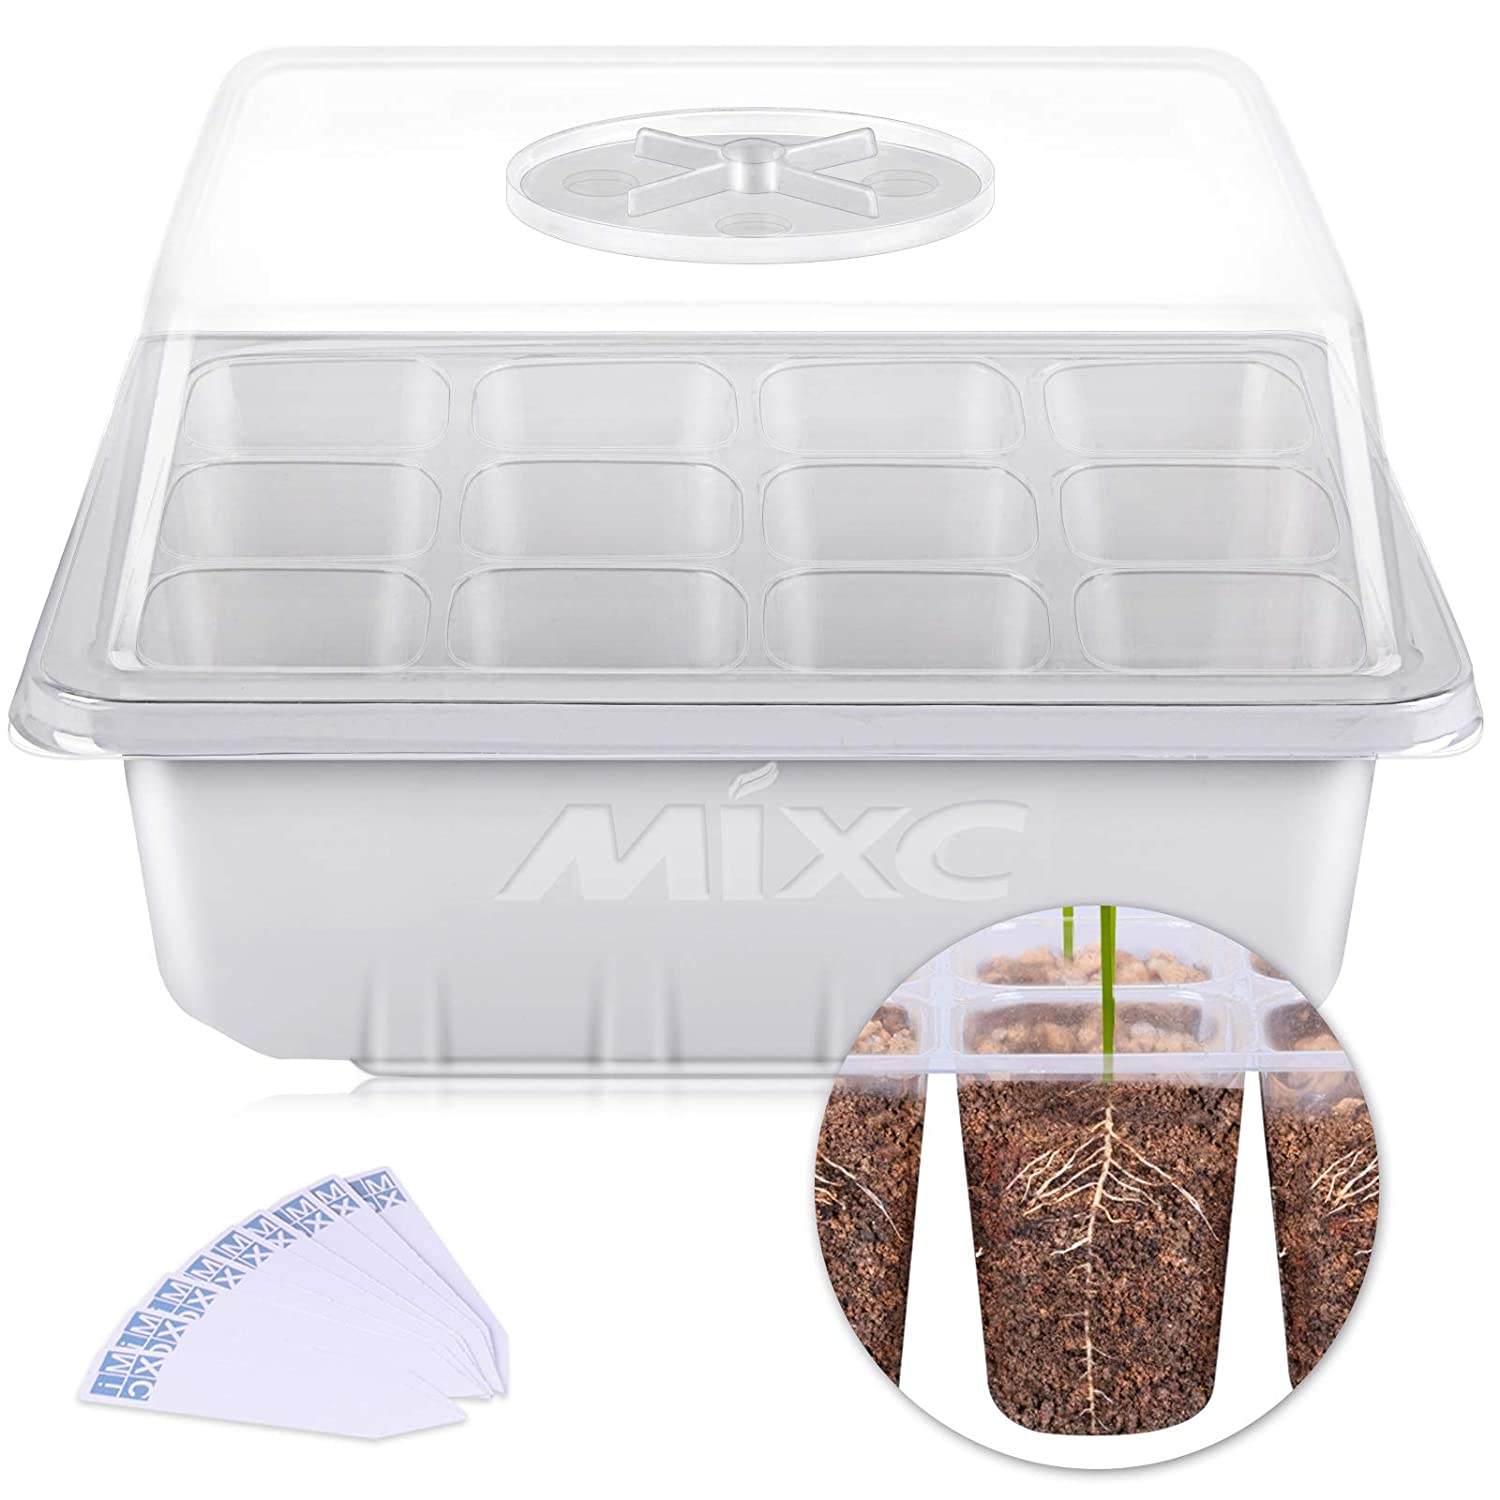 10 Pack Seed Starter Trays, Mixc Seedling Tray Plant Grow Kit Mini Propagator mit Humidity Vented Dome und Base für Seeds Starting Greenhouse (12 Cells Per Tray)